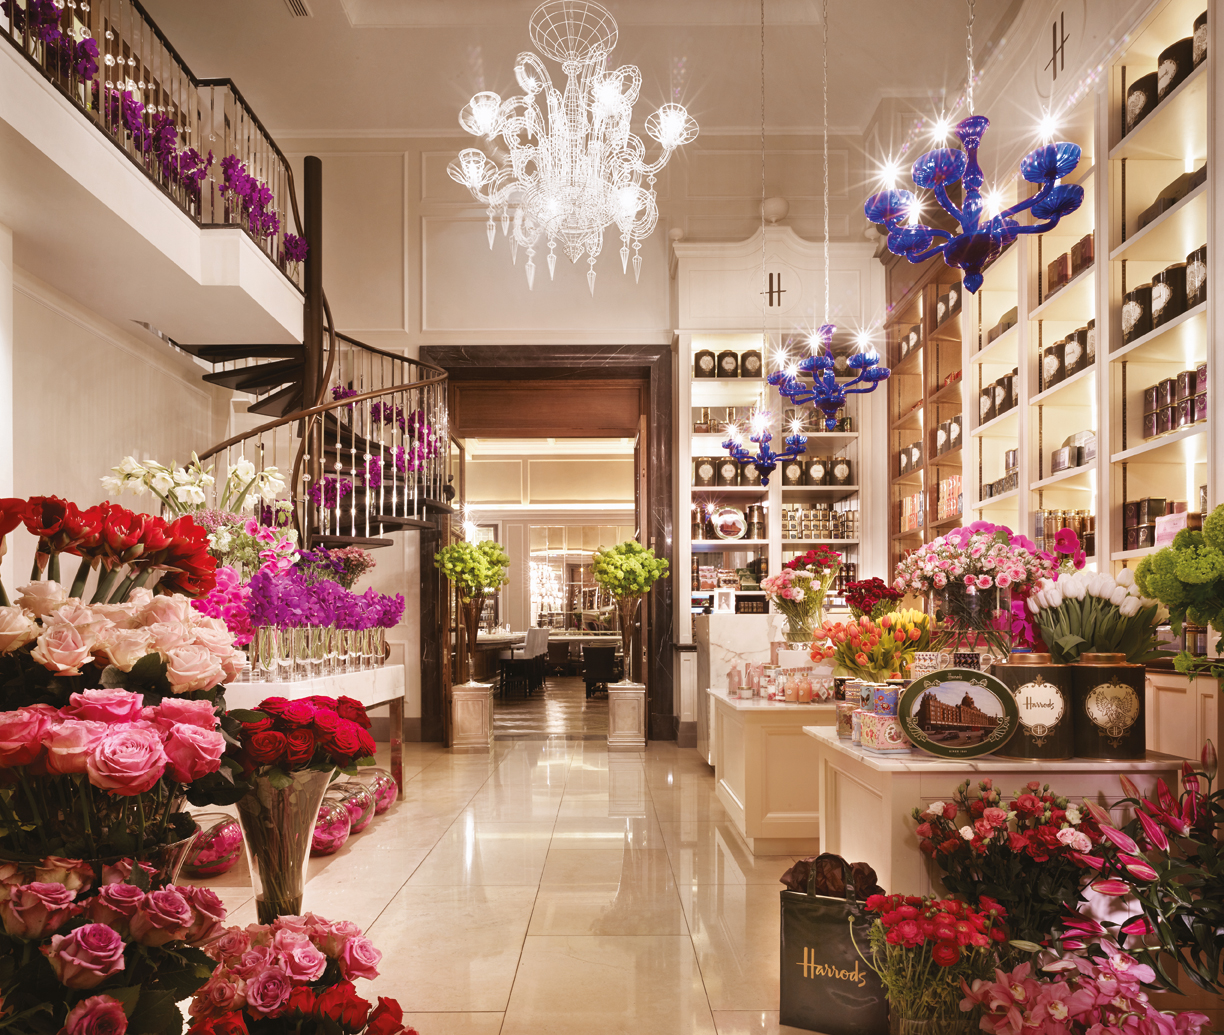 Harrods Boutique & Corinthia London Florists Corinthia Hotel London.jpg